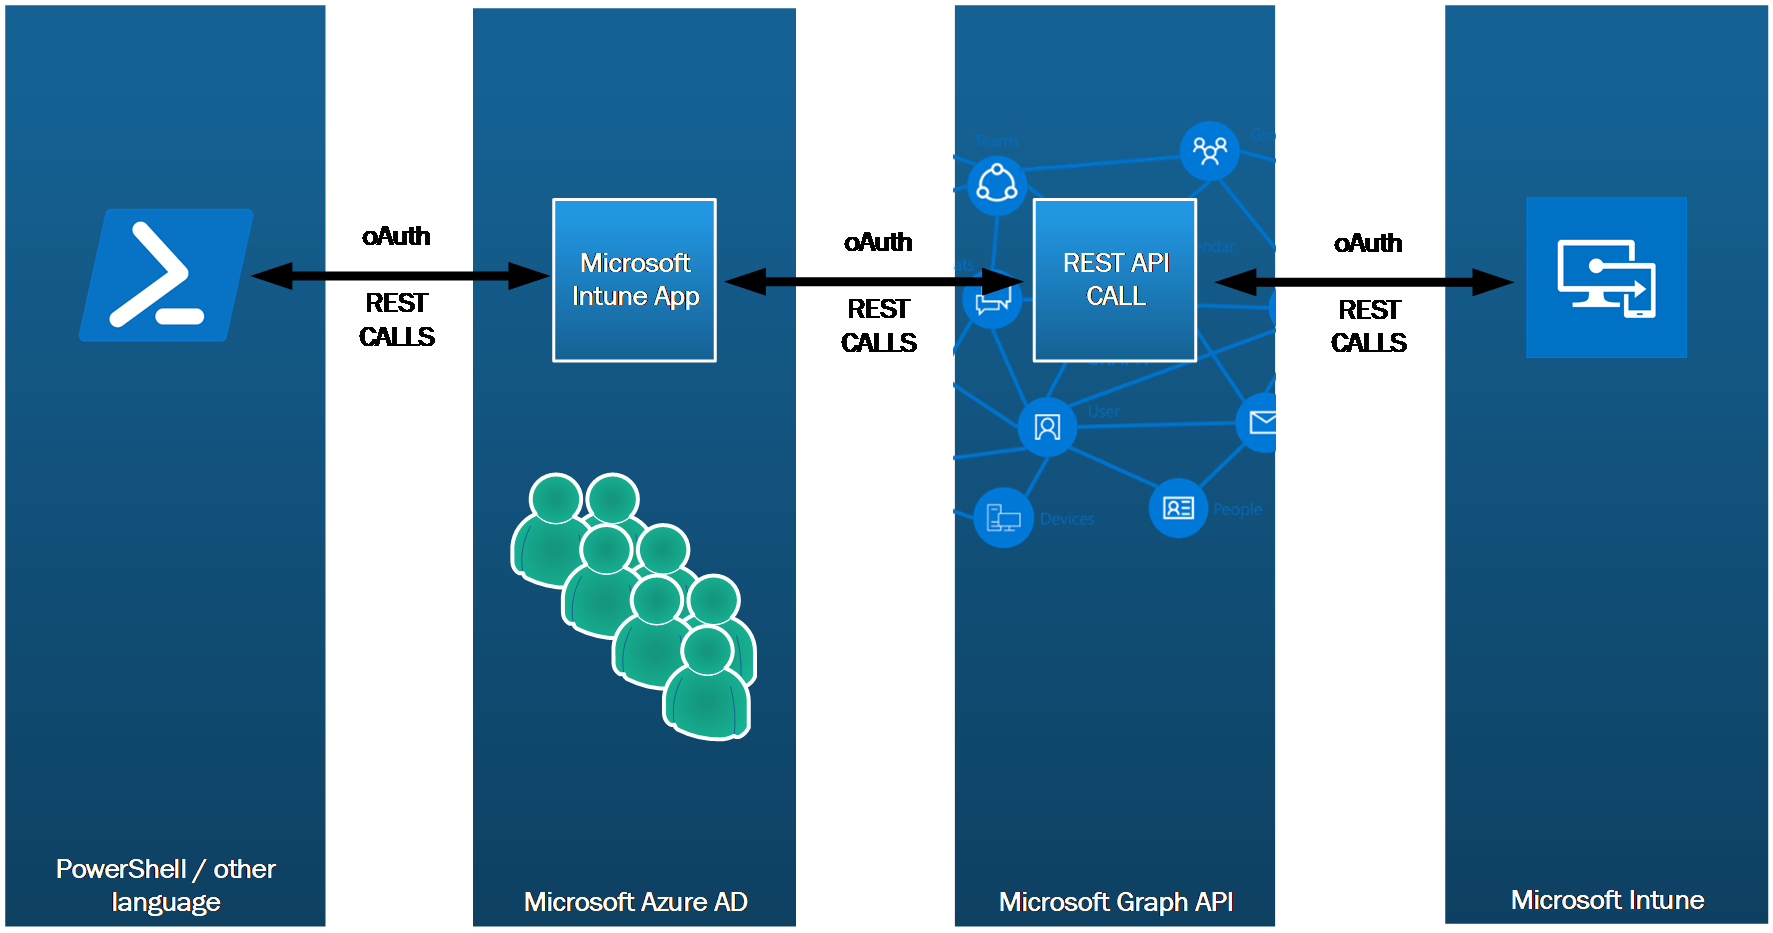 How to use PowerShell to access Microsoft Intune via